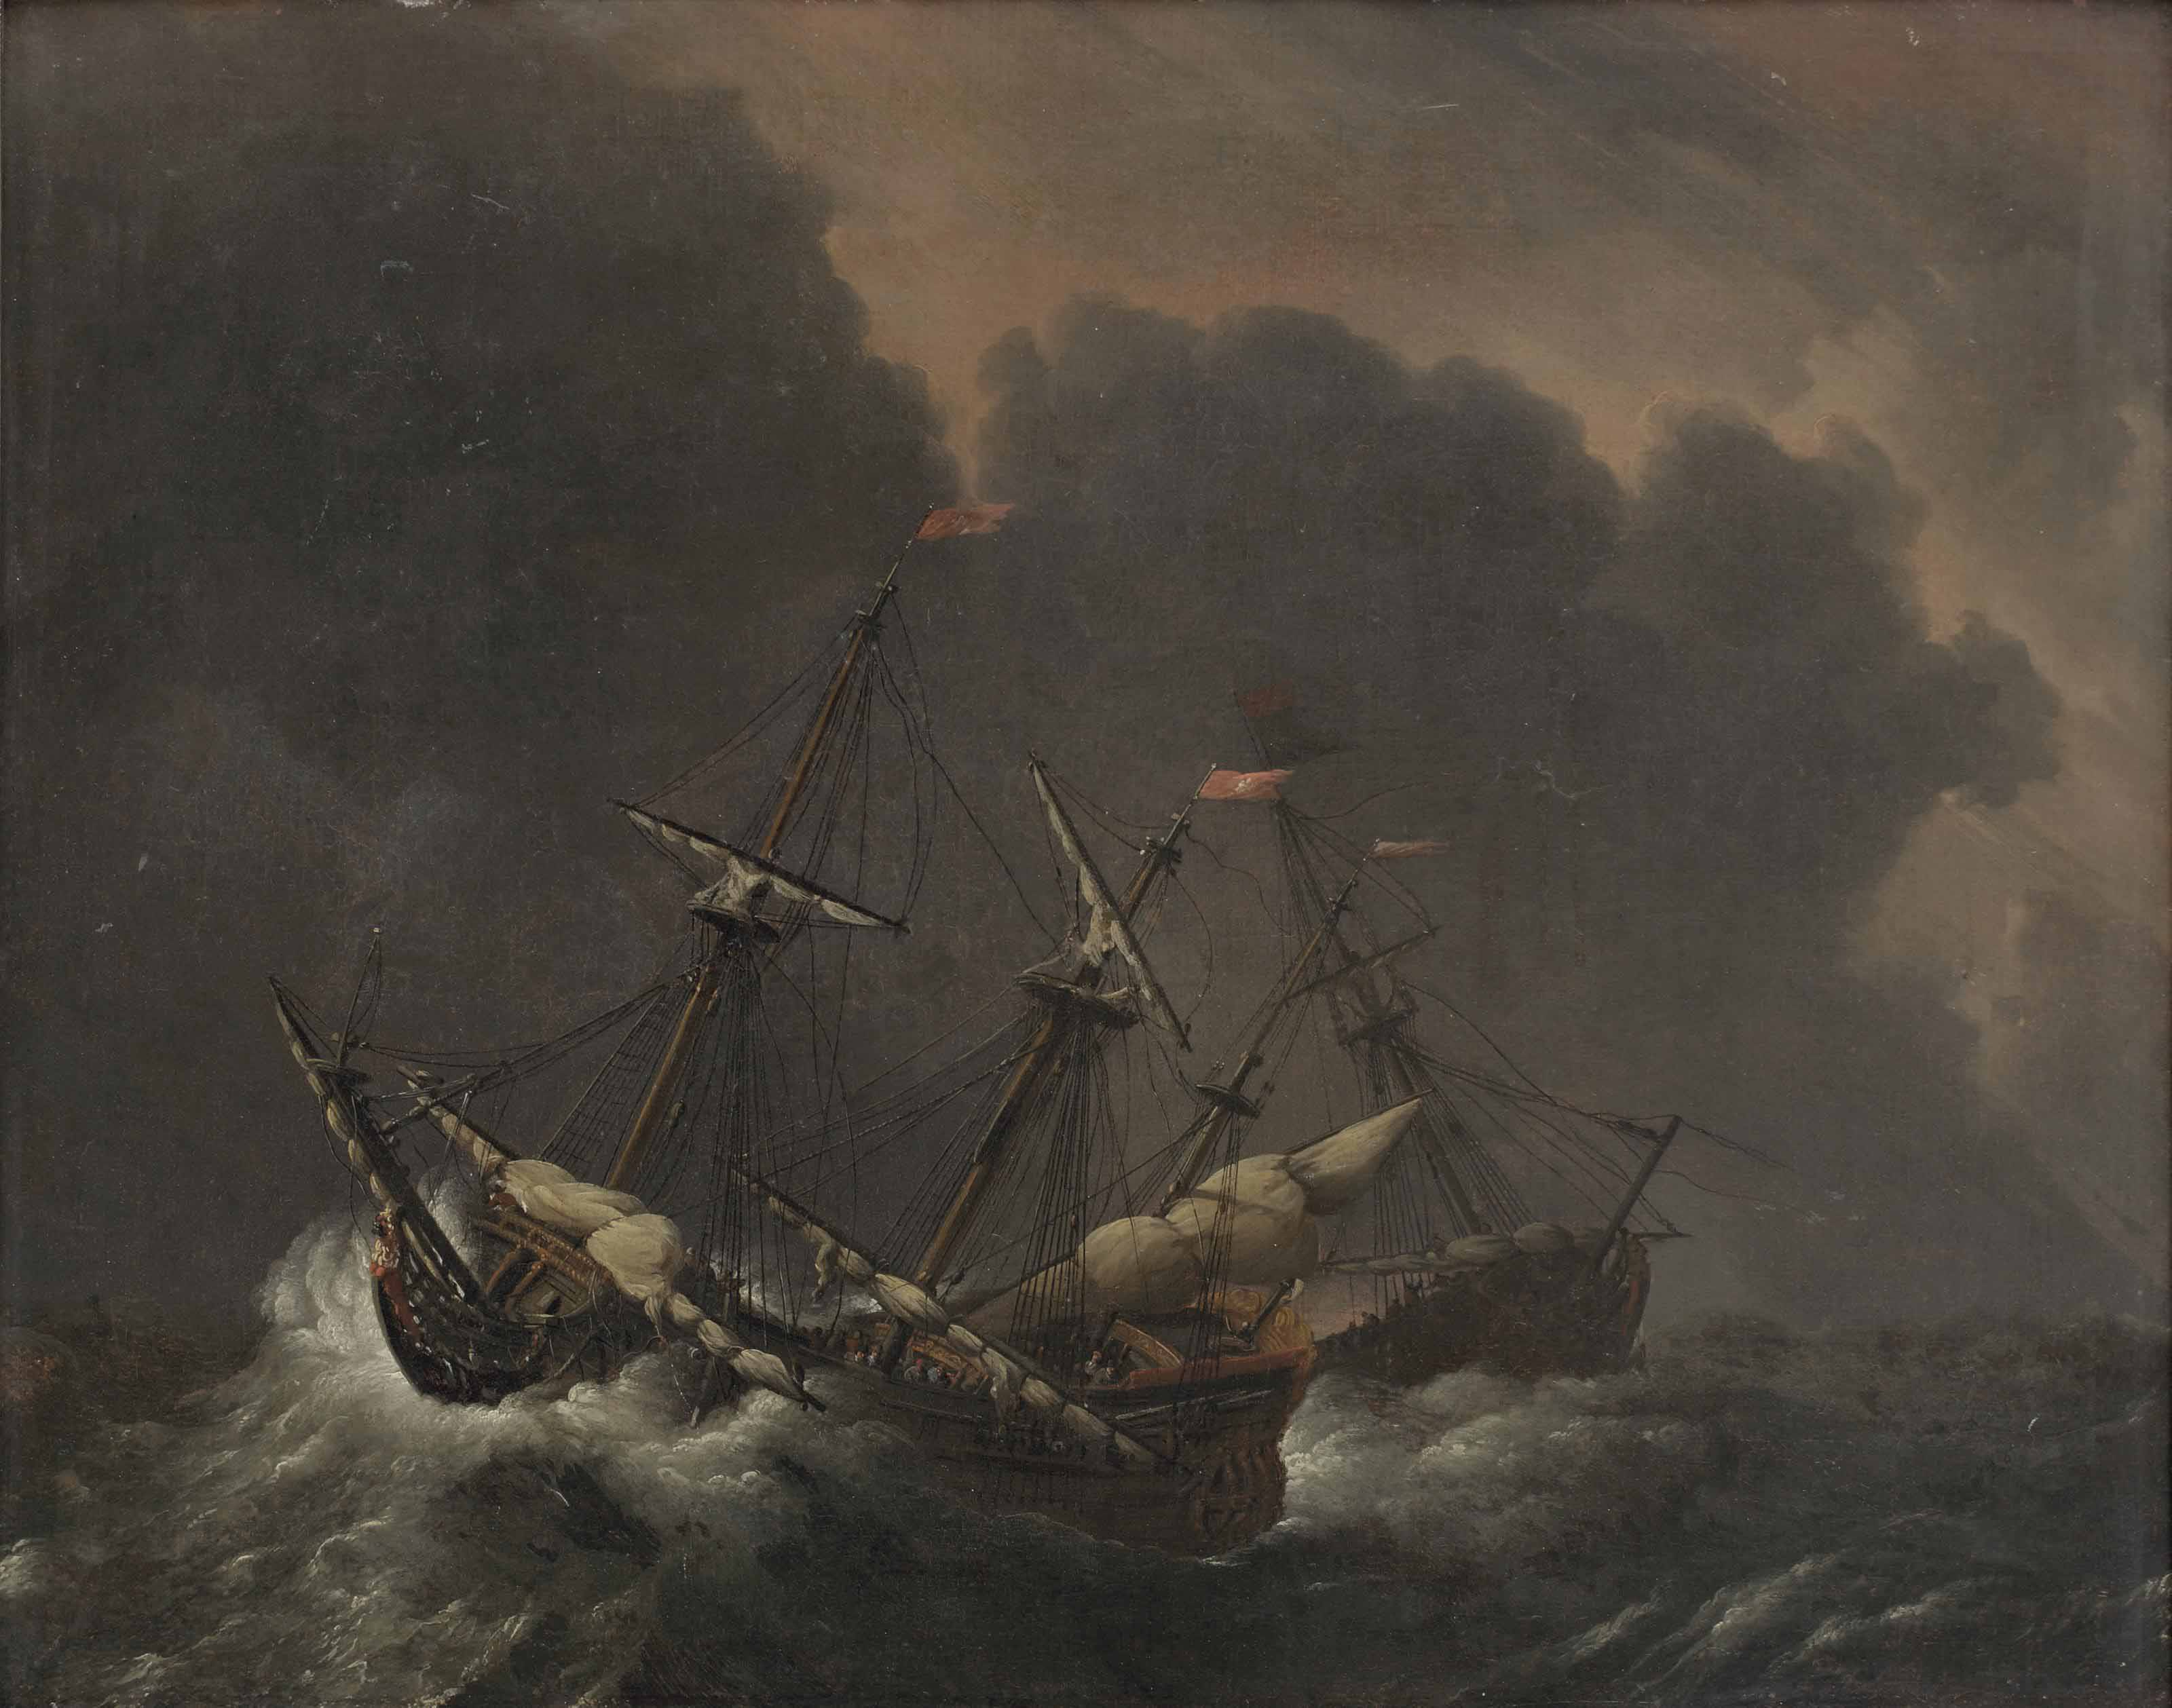 Ships caught in a storm